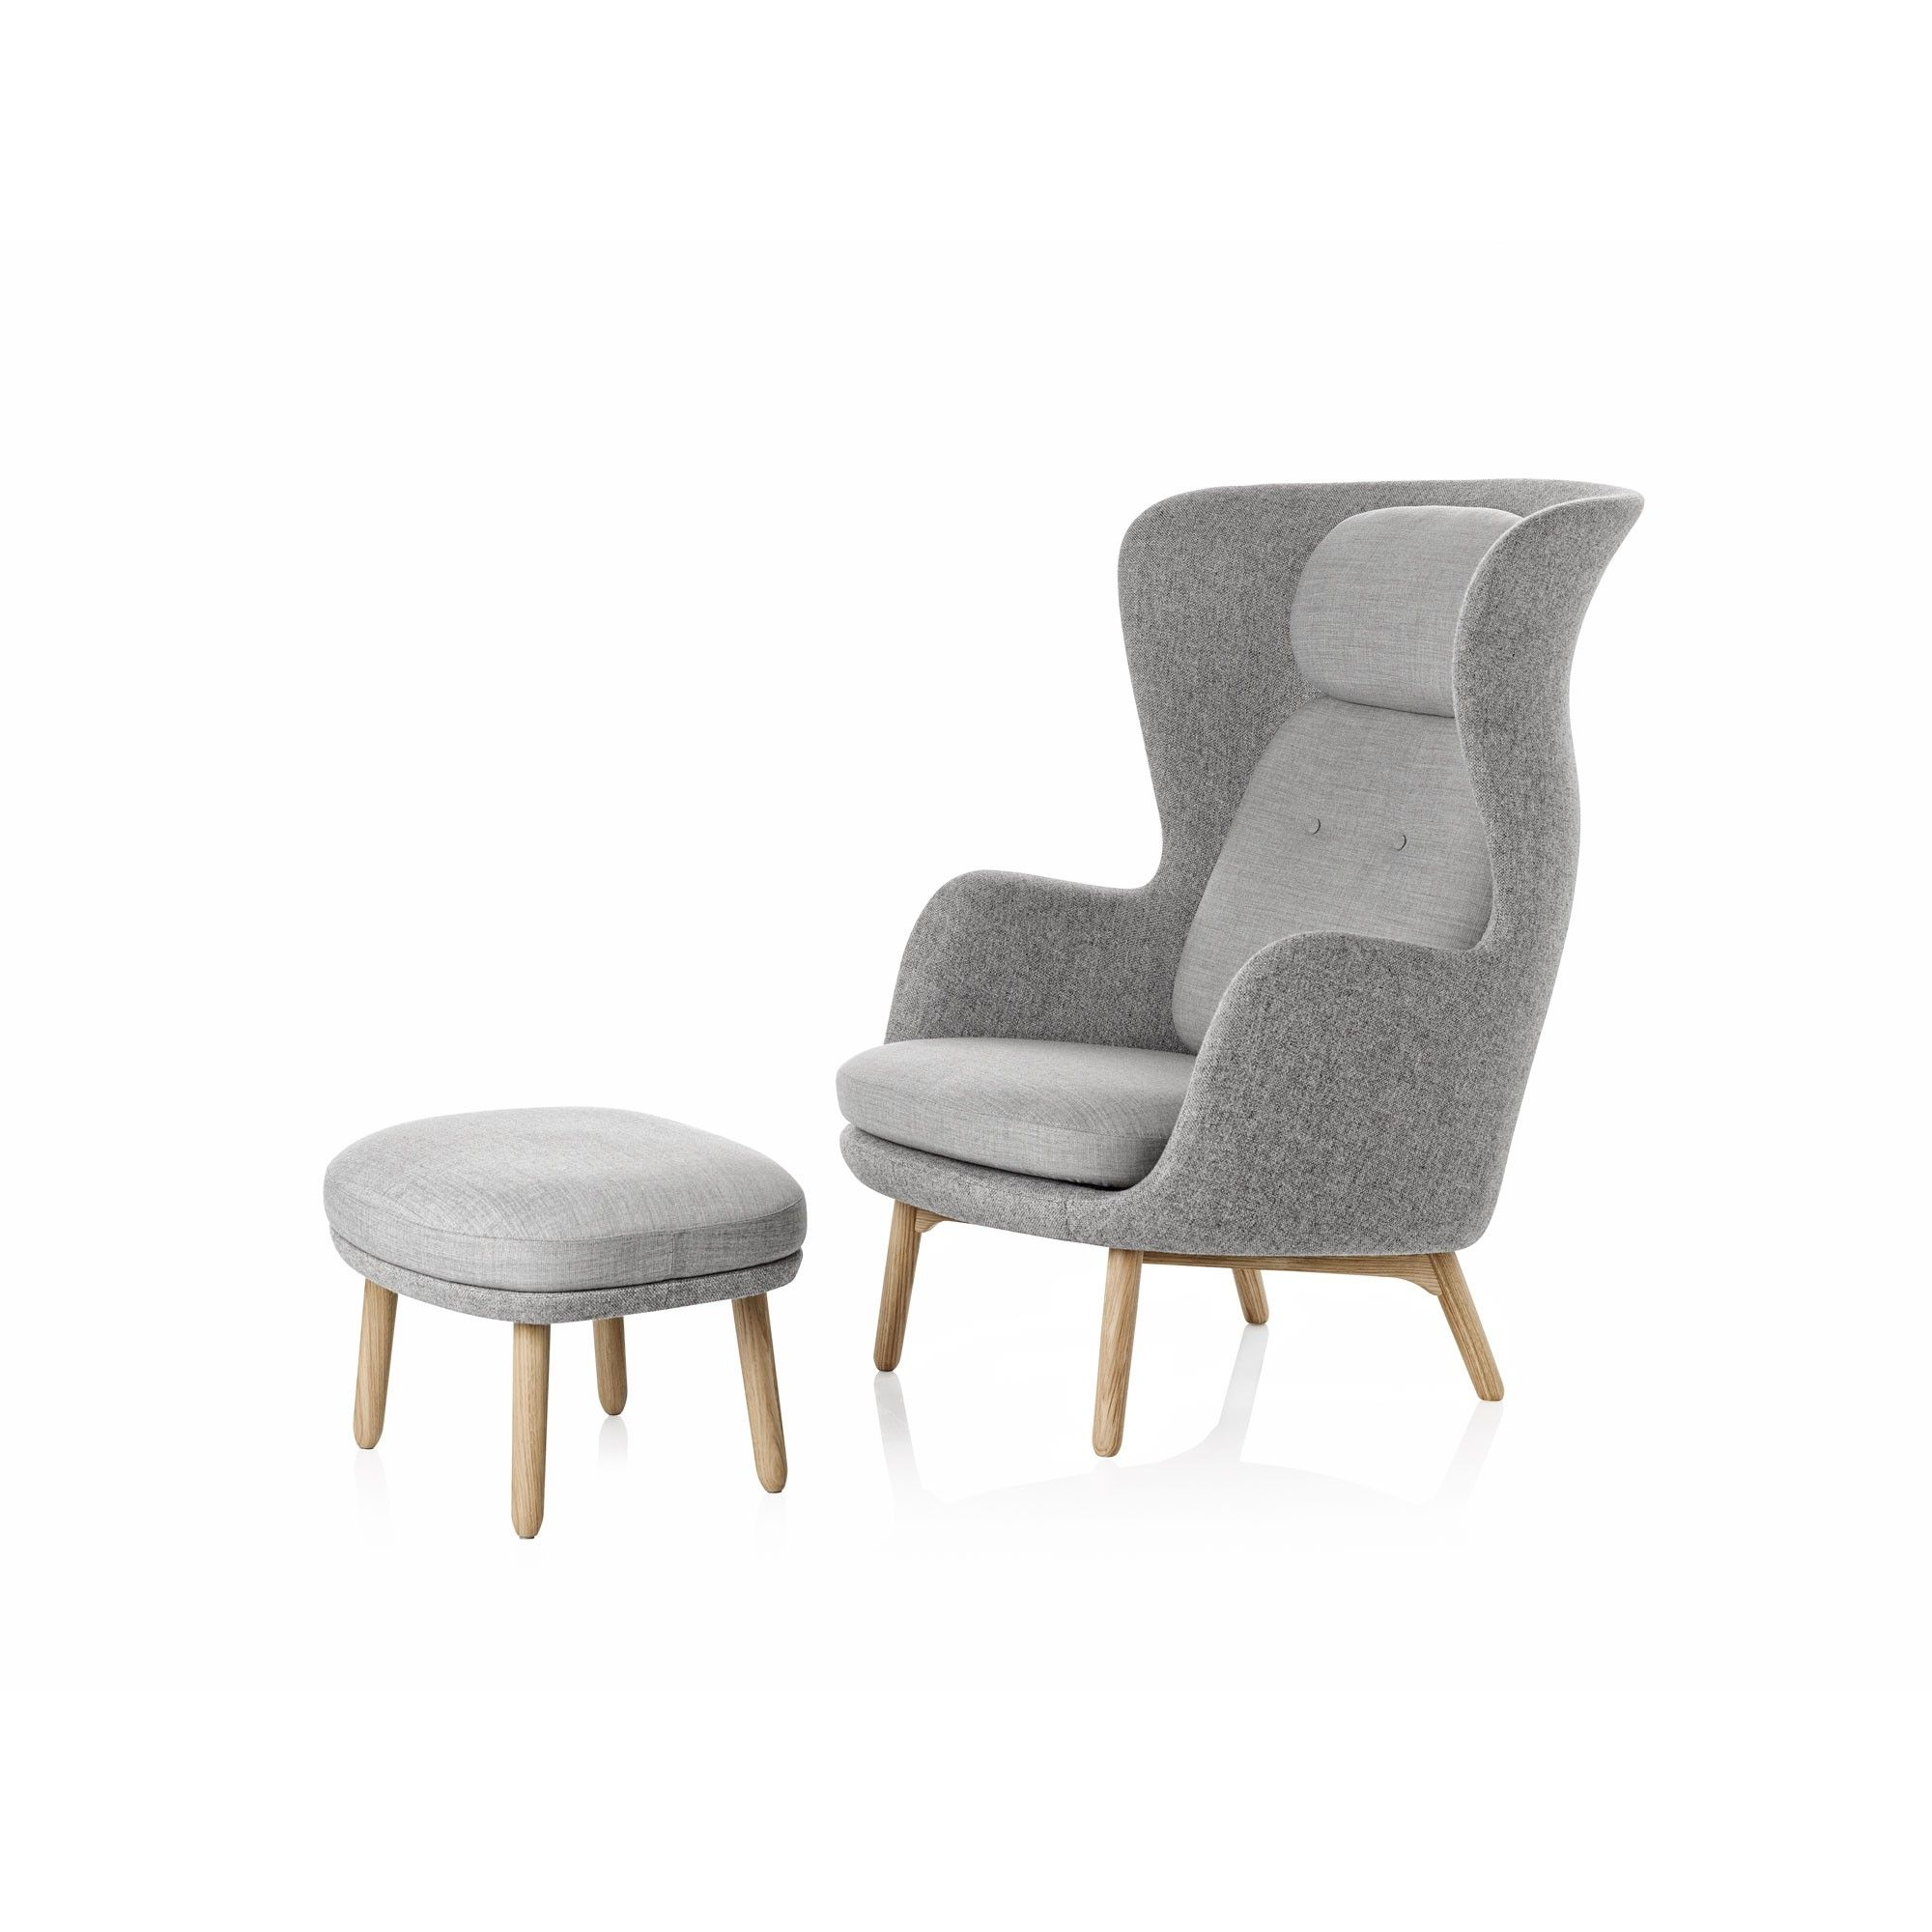 Buy Ro Chair By Jaime Hayon For Fritz Hansen   Lounge Chairs   Seating    Furniture   Dering Hall